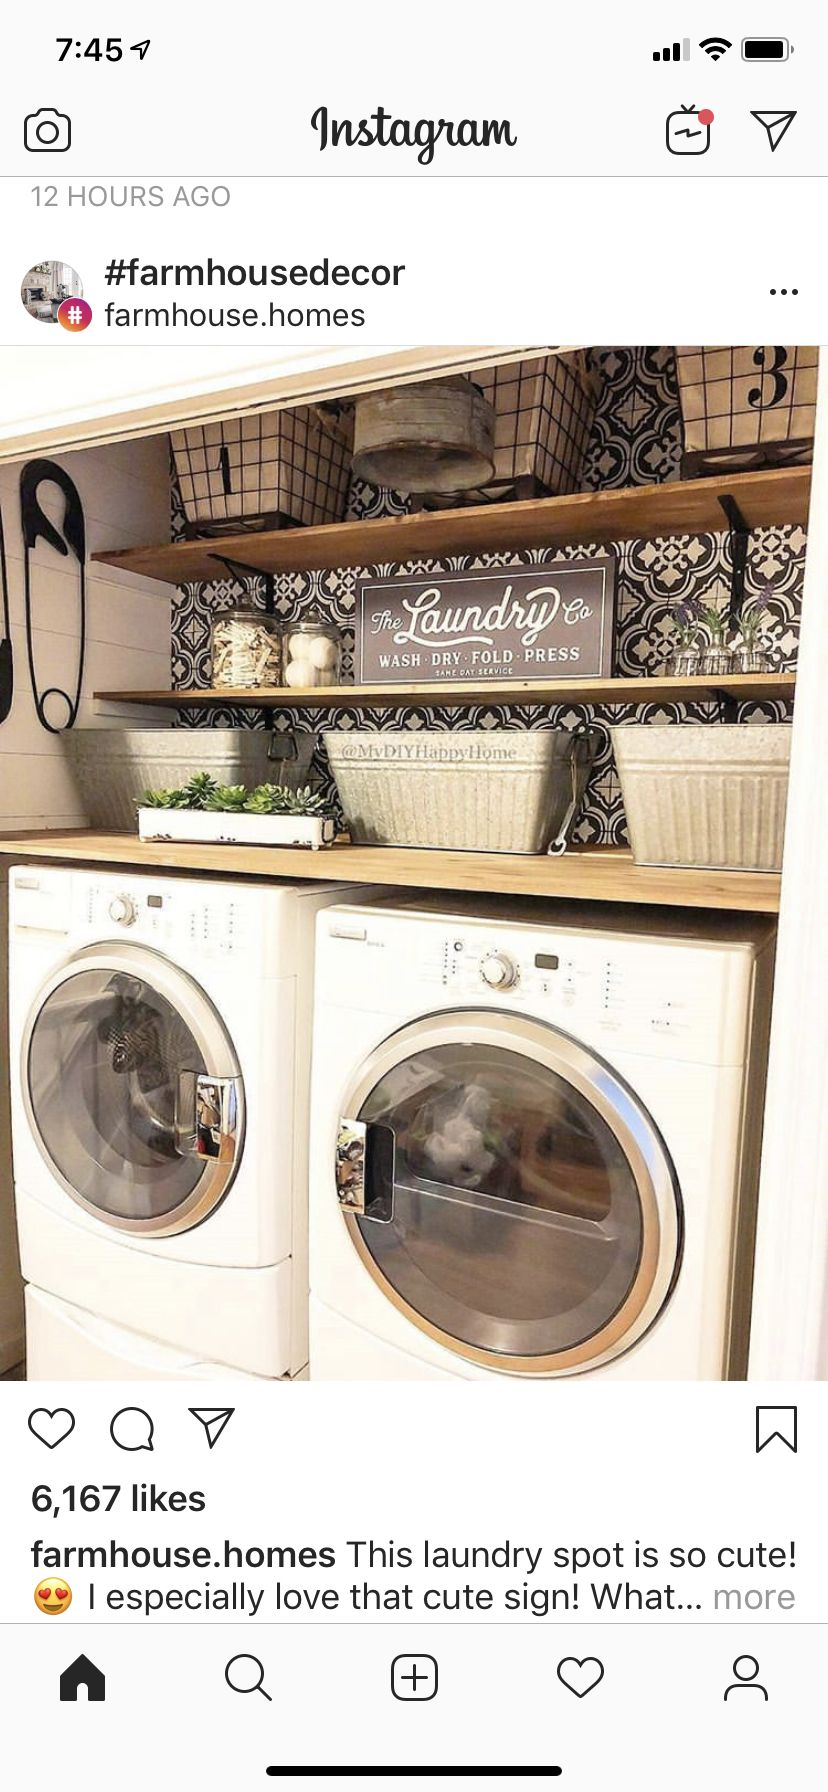 Pin By Beth Cipriano On Habersham Sc Washing Laundry Laundry Problems Wash Dry Fold